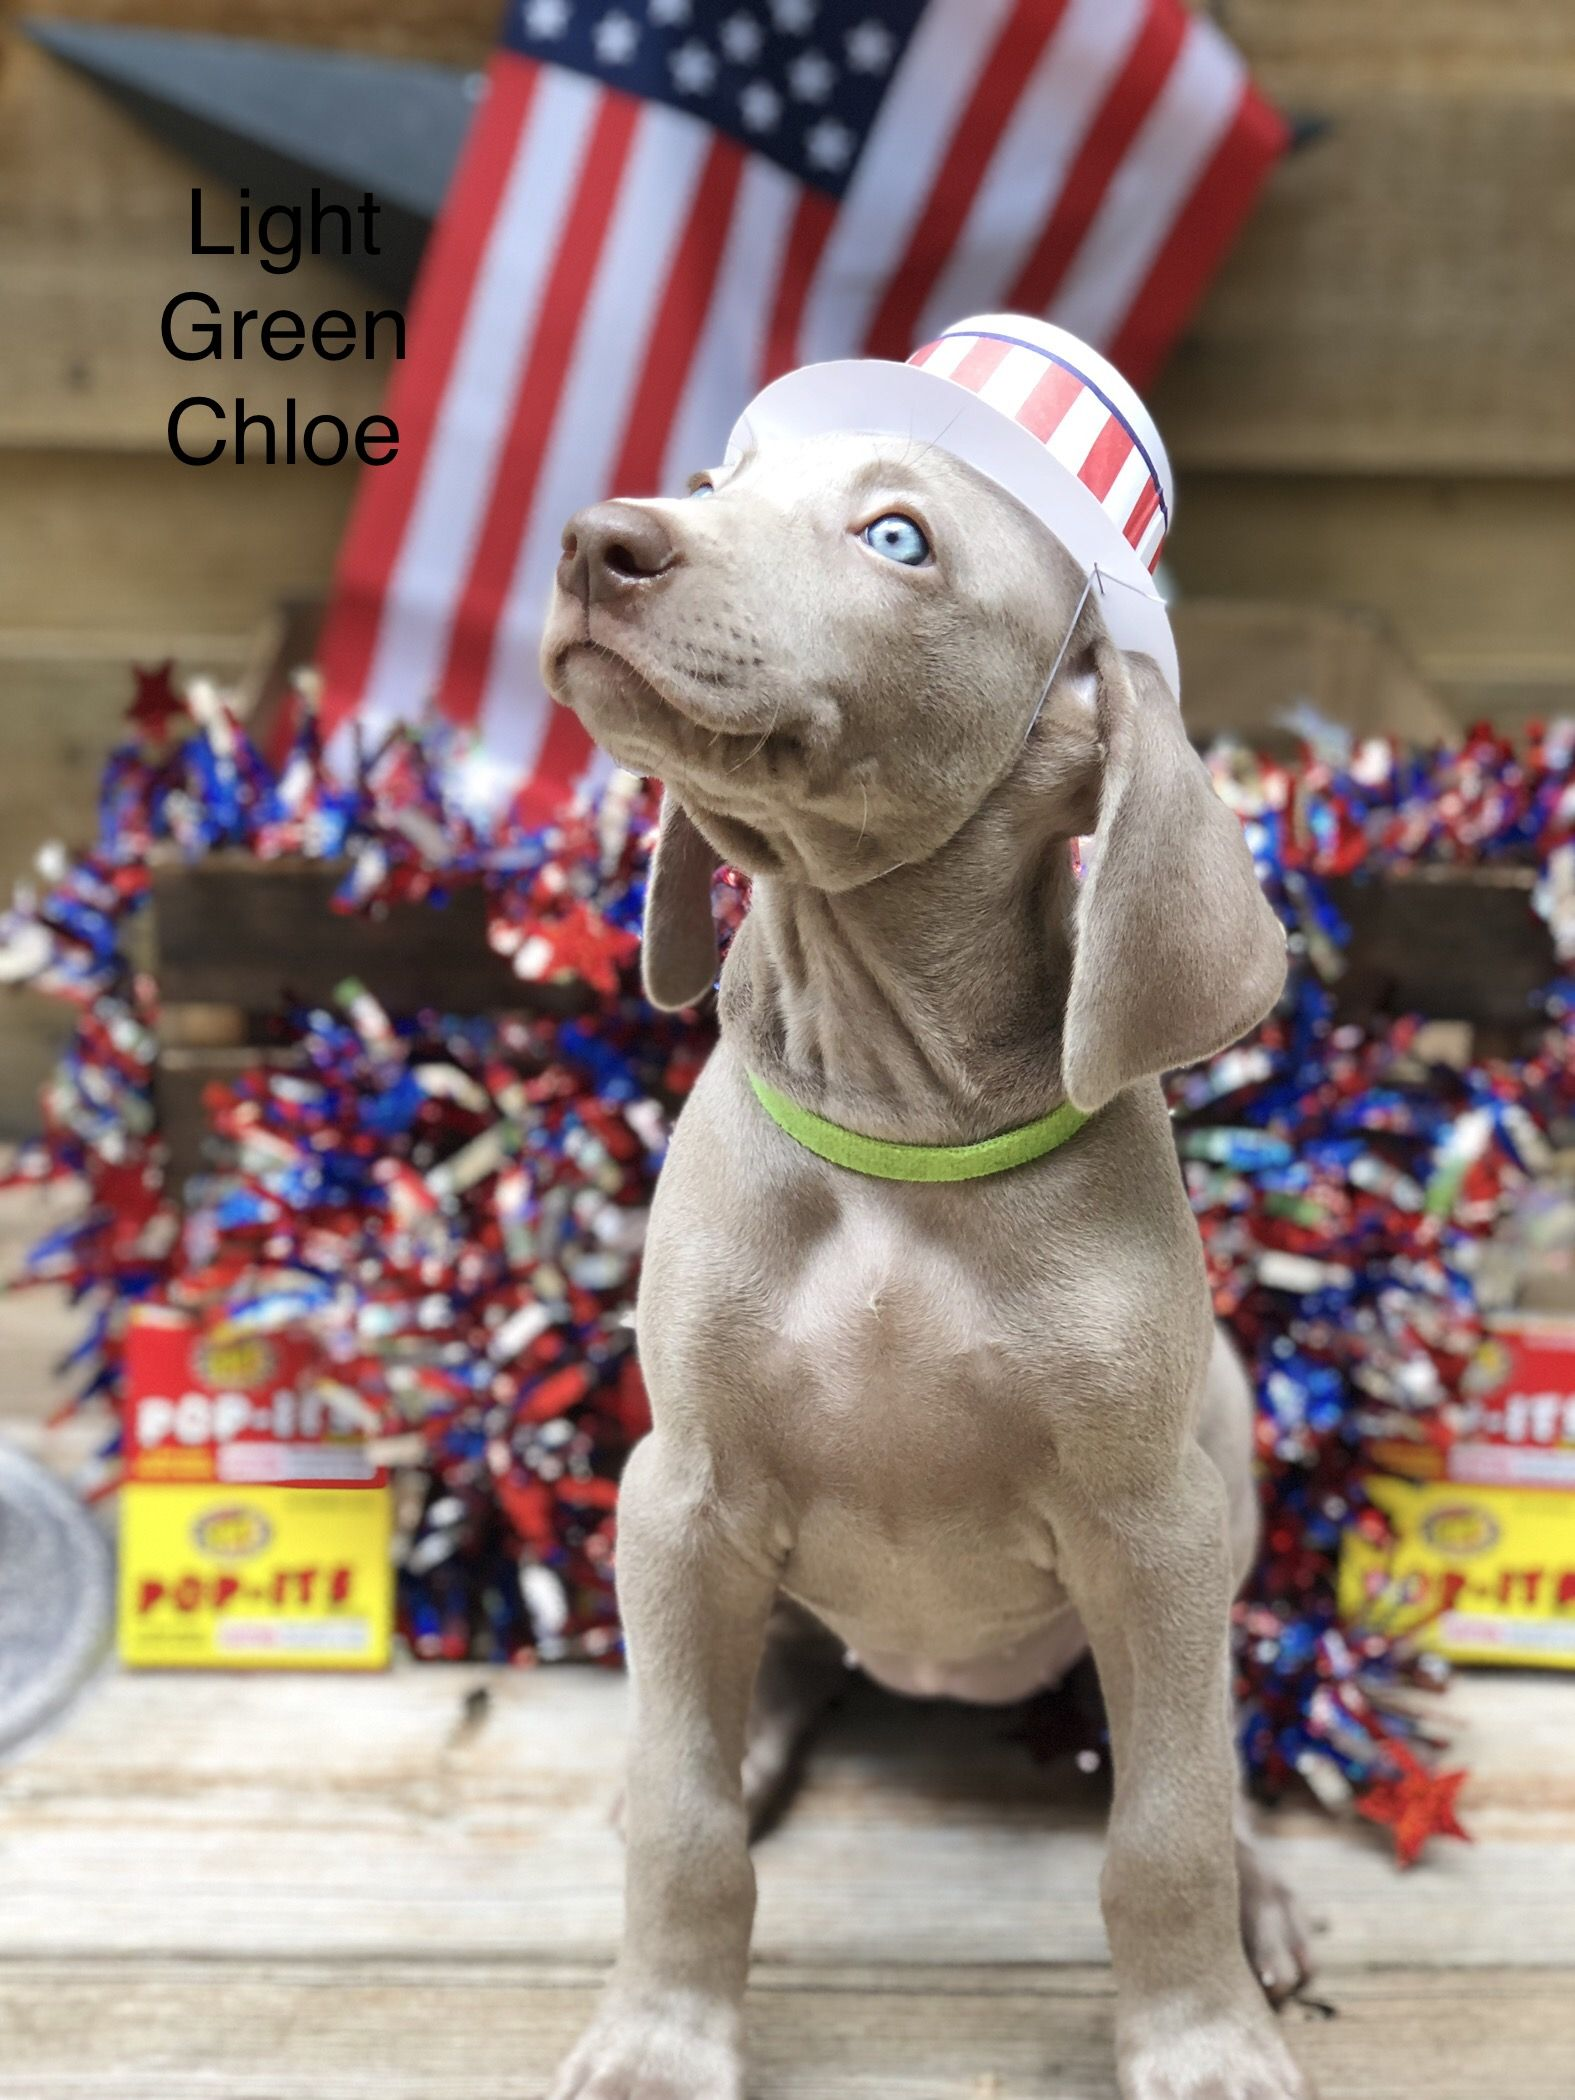 Pin By Puppies4u On Puppies For Sale Weimaraner Dogs Dog